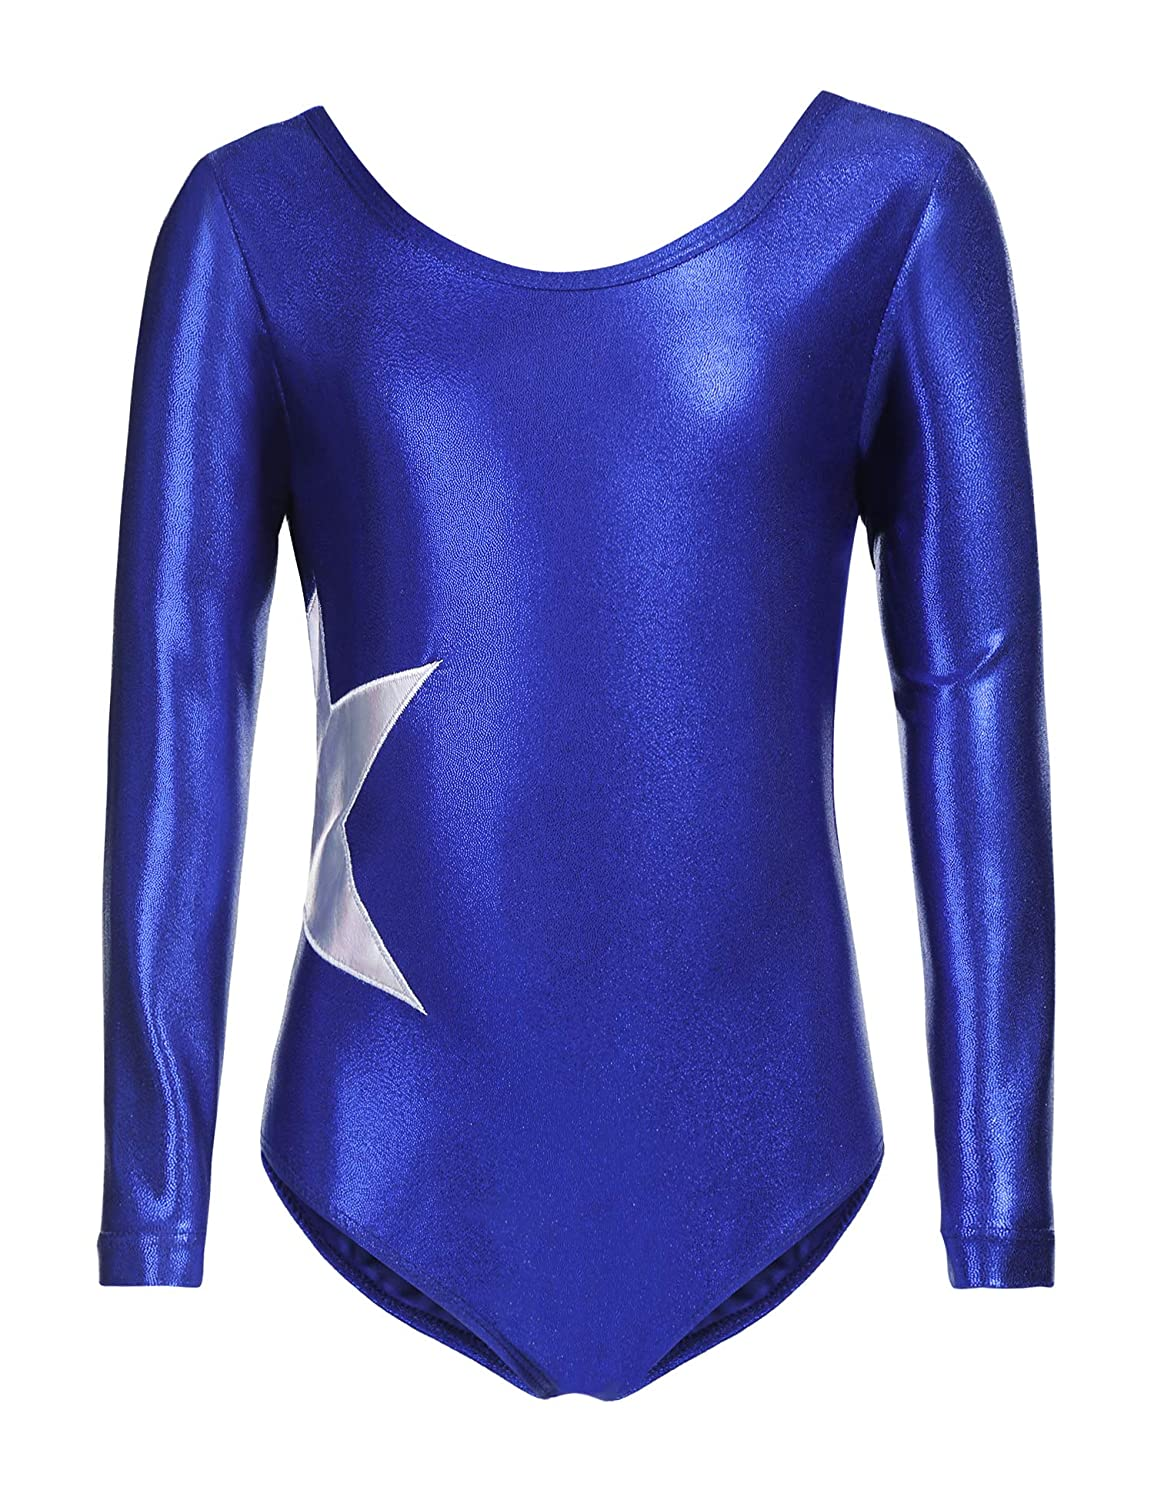 Arshiner Girls Gymnastic Ballet Athletic Clothes Long Sleeve Solid Sparkle Leotard